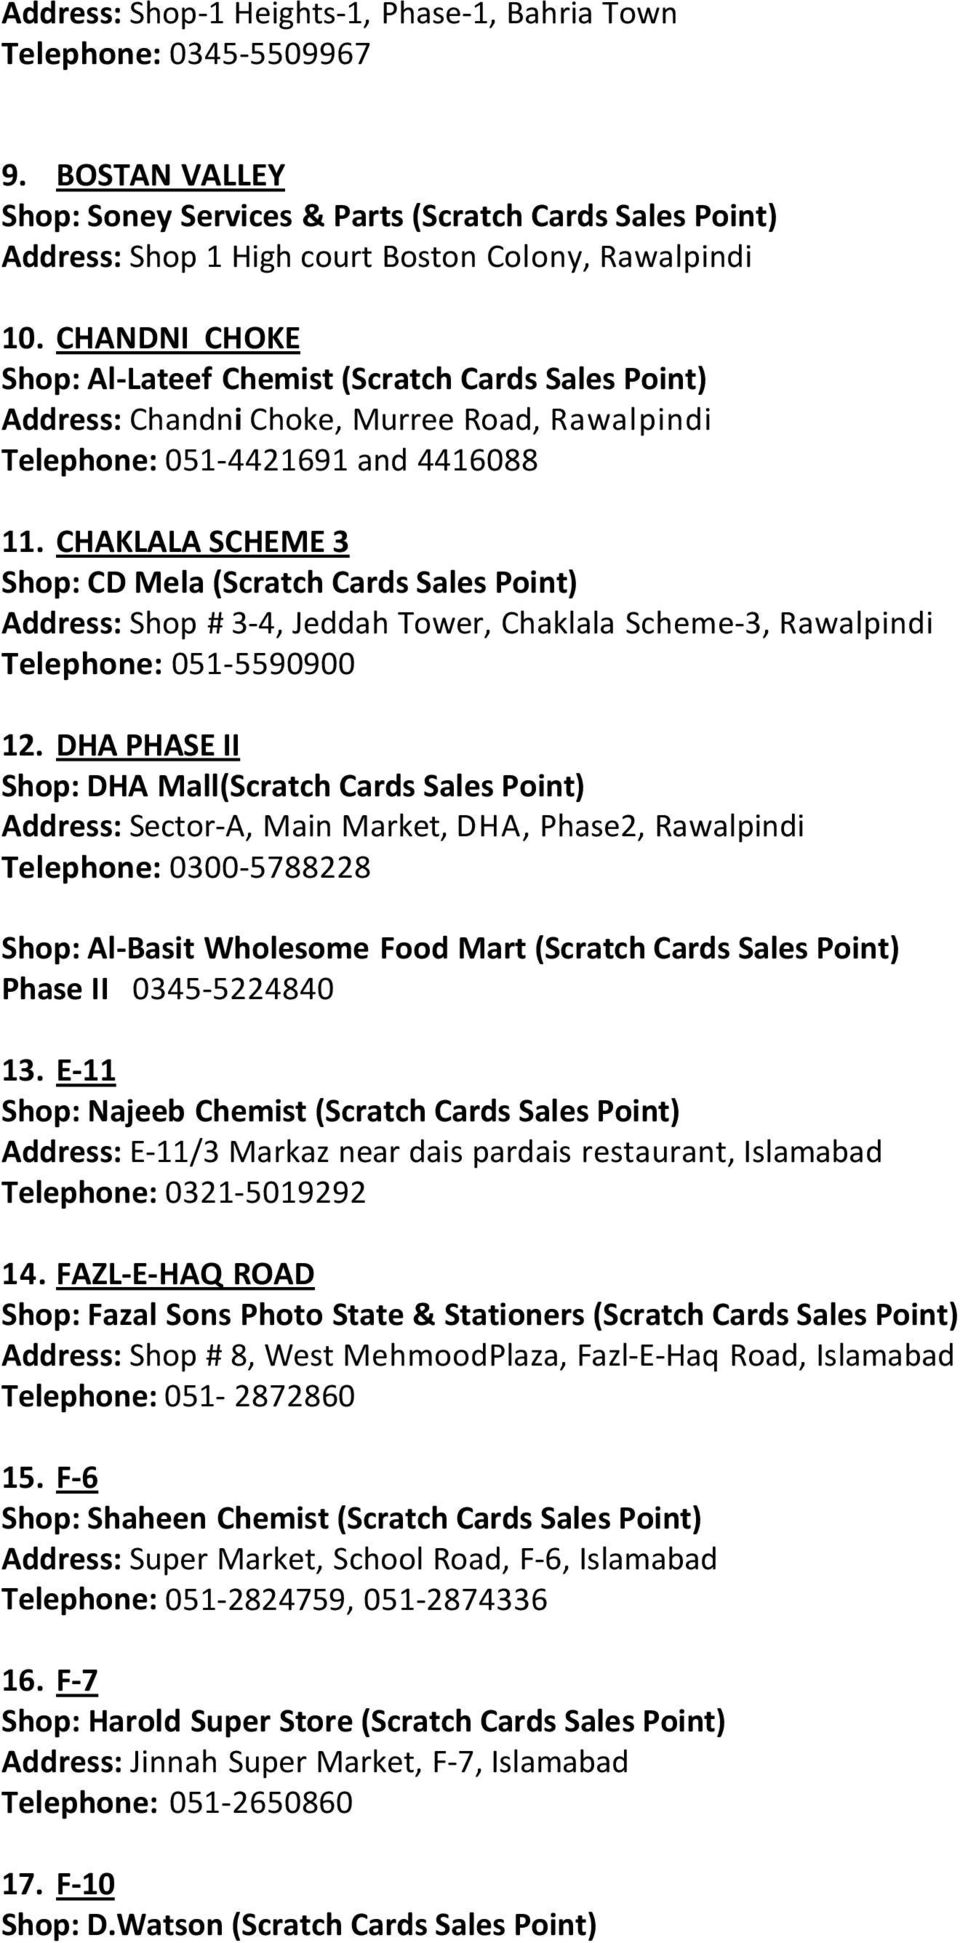 ISLAMABAD/ RAWALPINDI DEALERS AND SCRATCH CARDS SALES POINTS - PDF